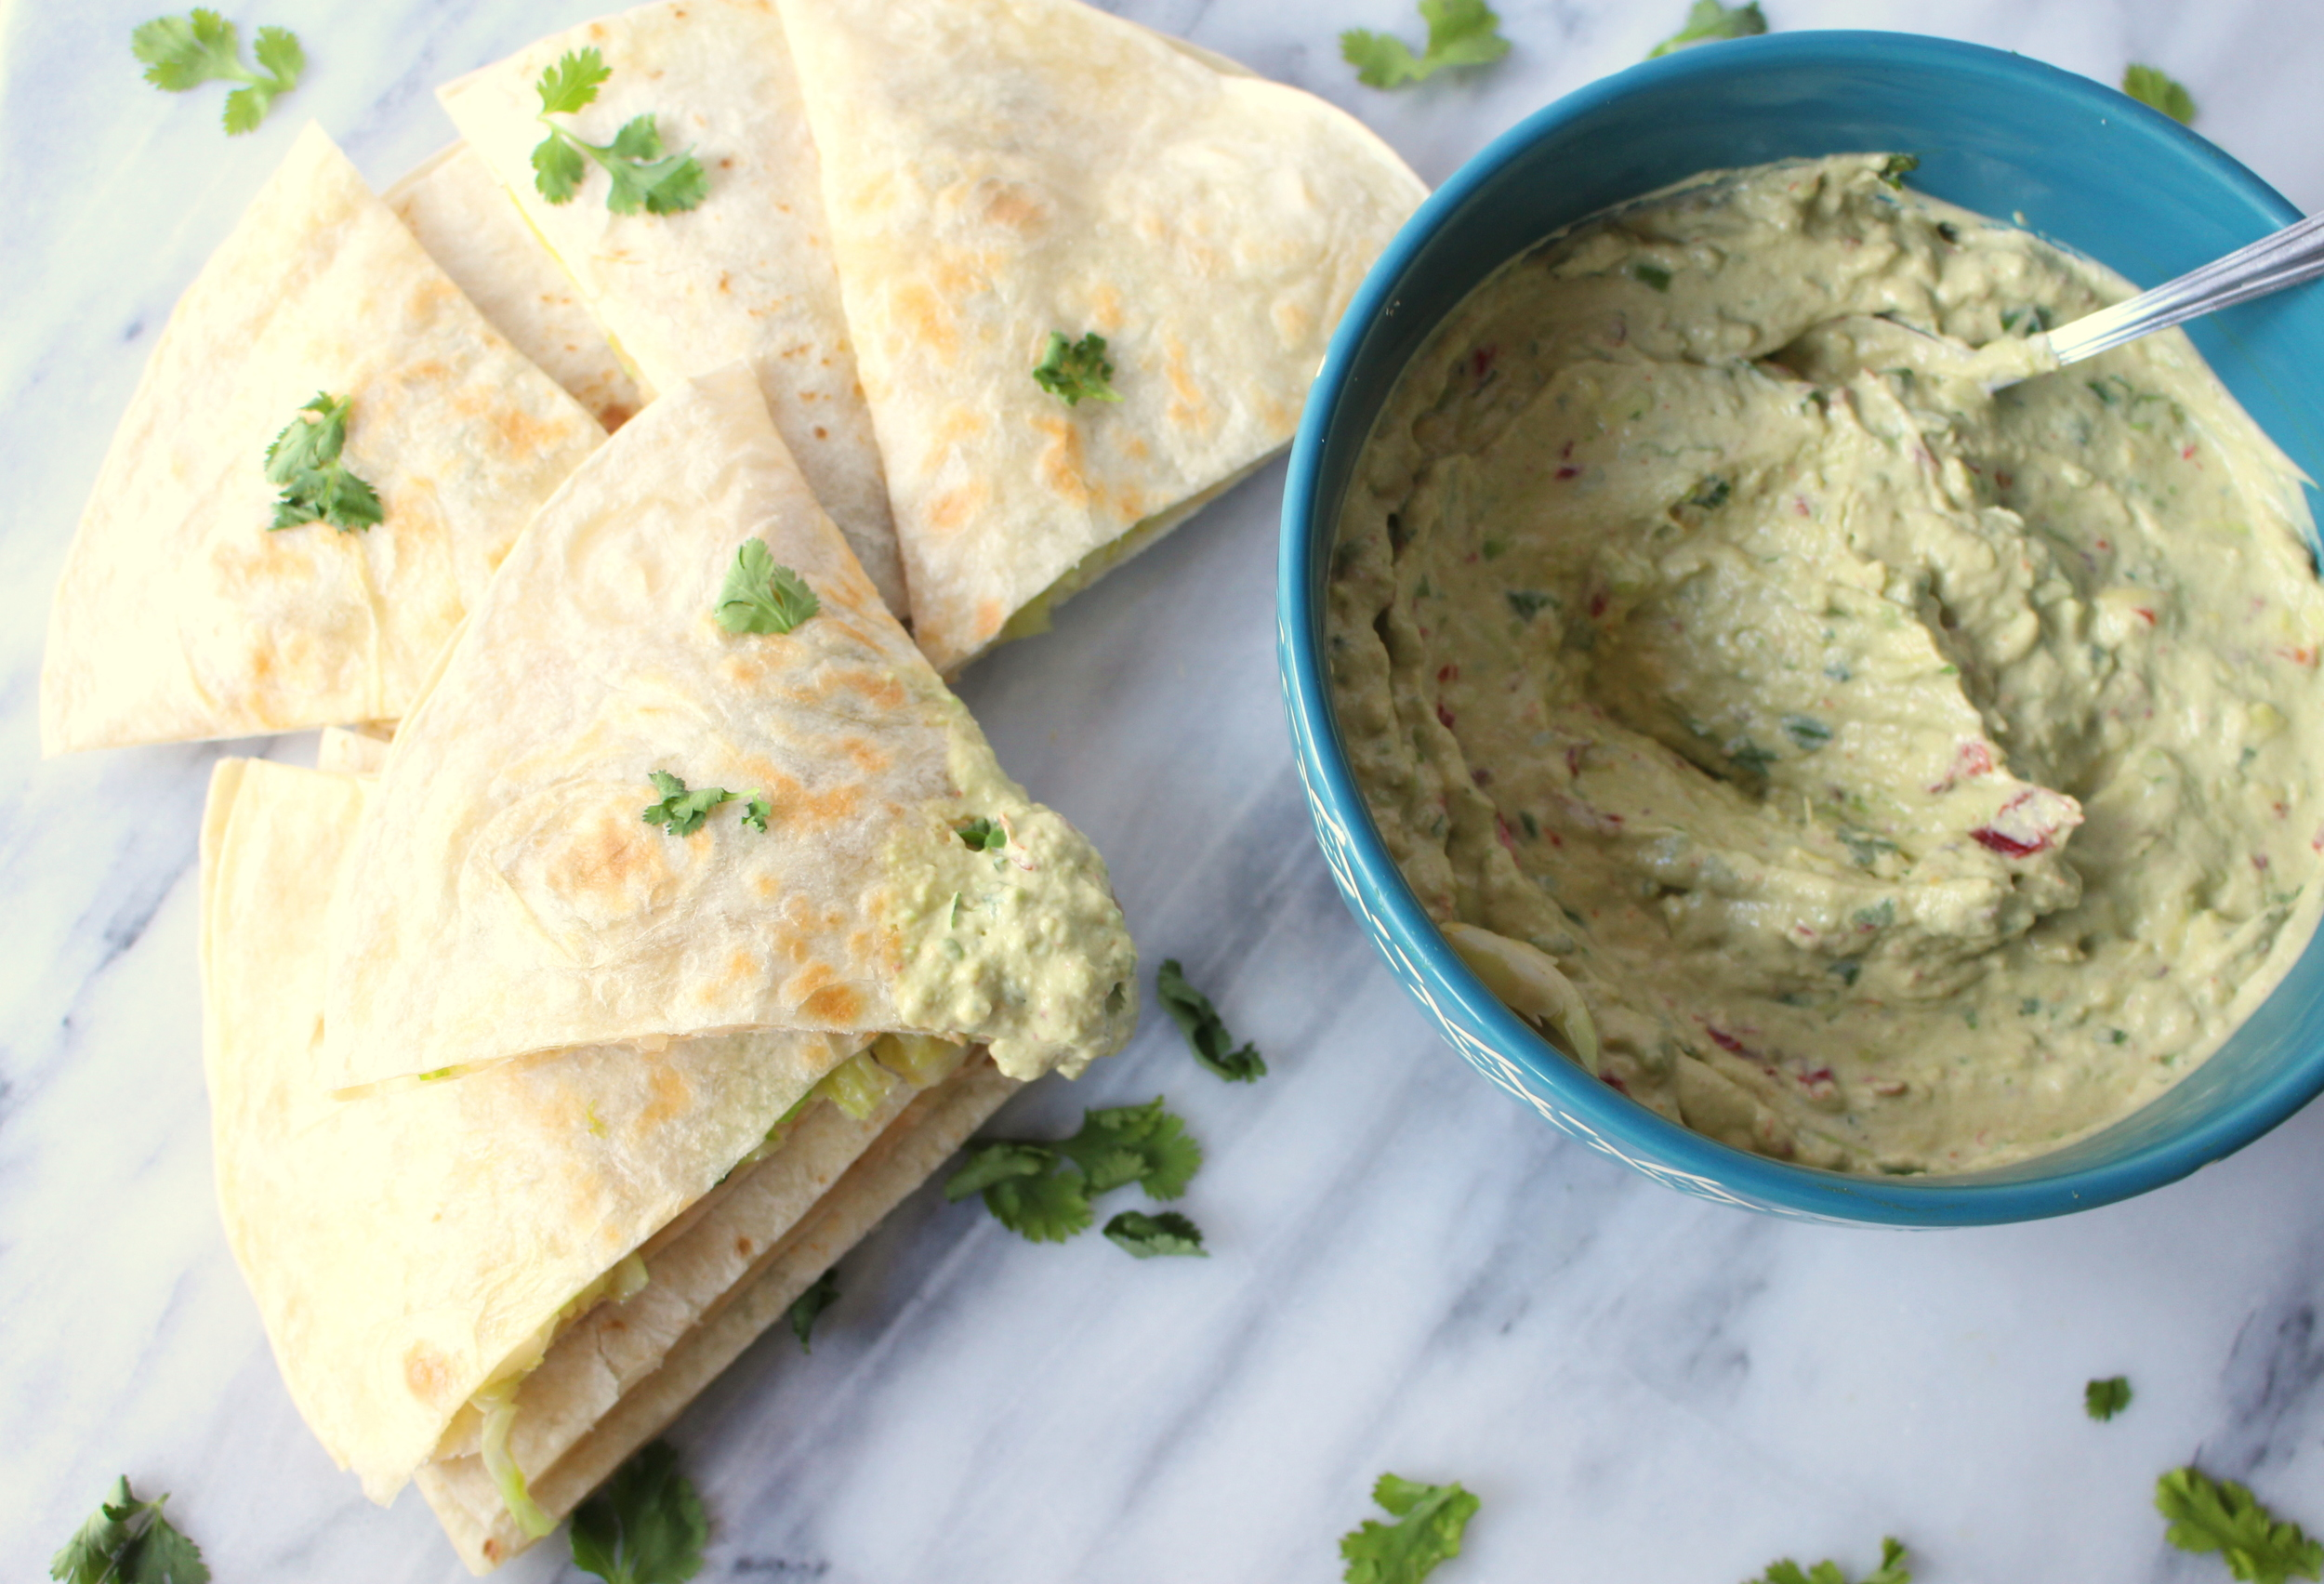 Brussels Sprouts and White Bean Quesadilla with Creamy Chipotle